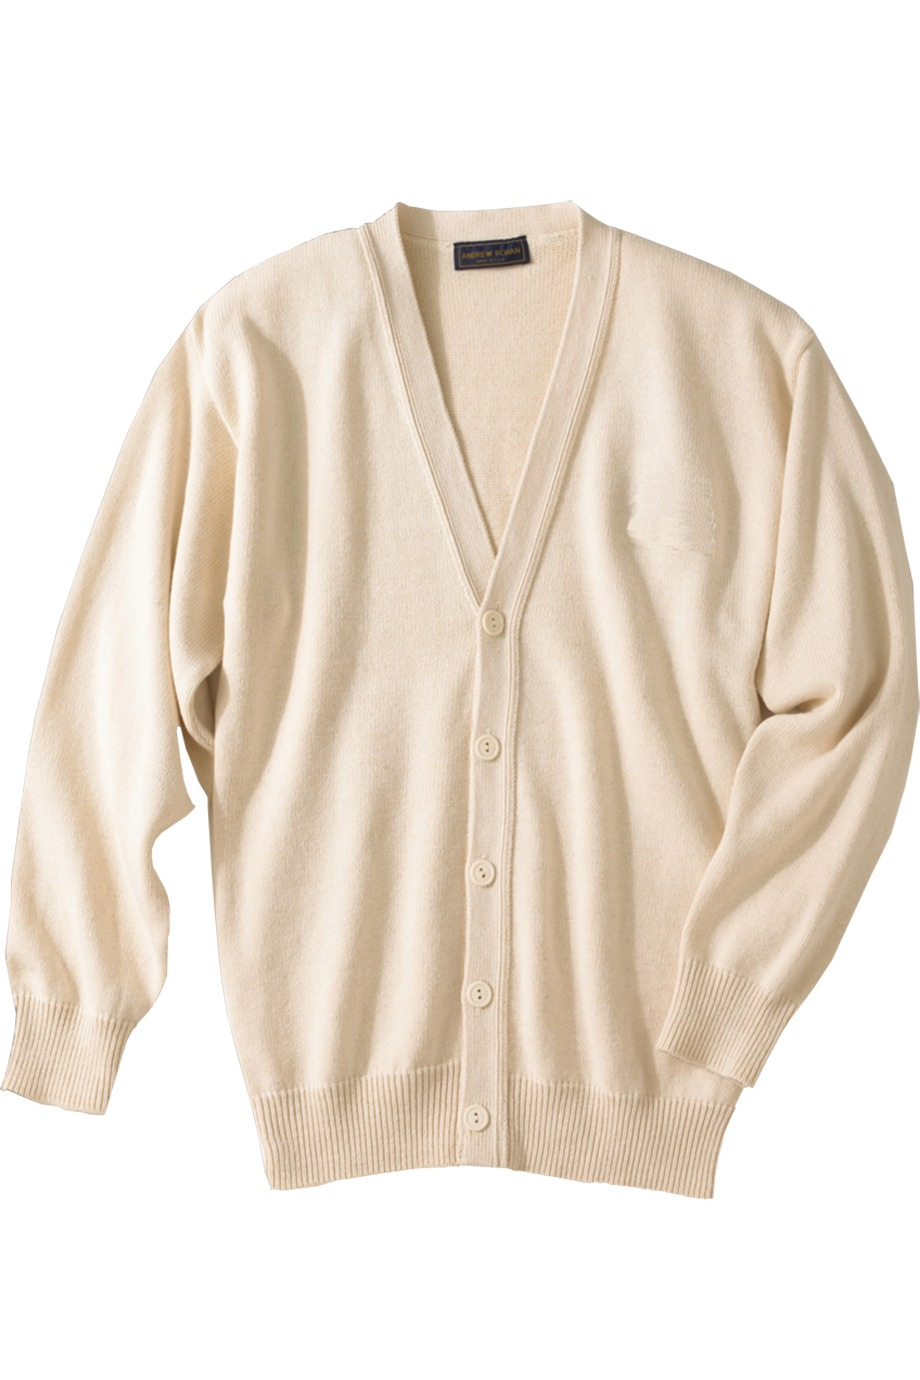 Edwards Garment 780 - Jersey Stitch V-Neck Cardigan